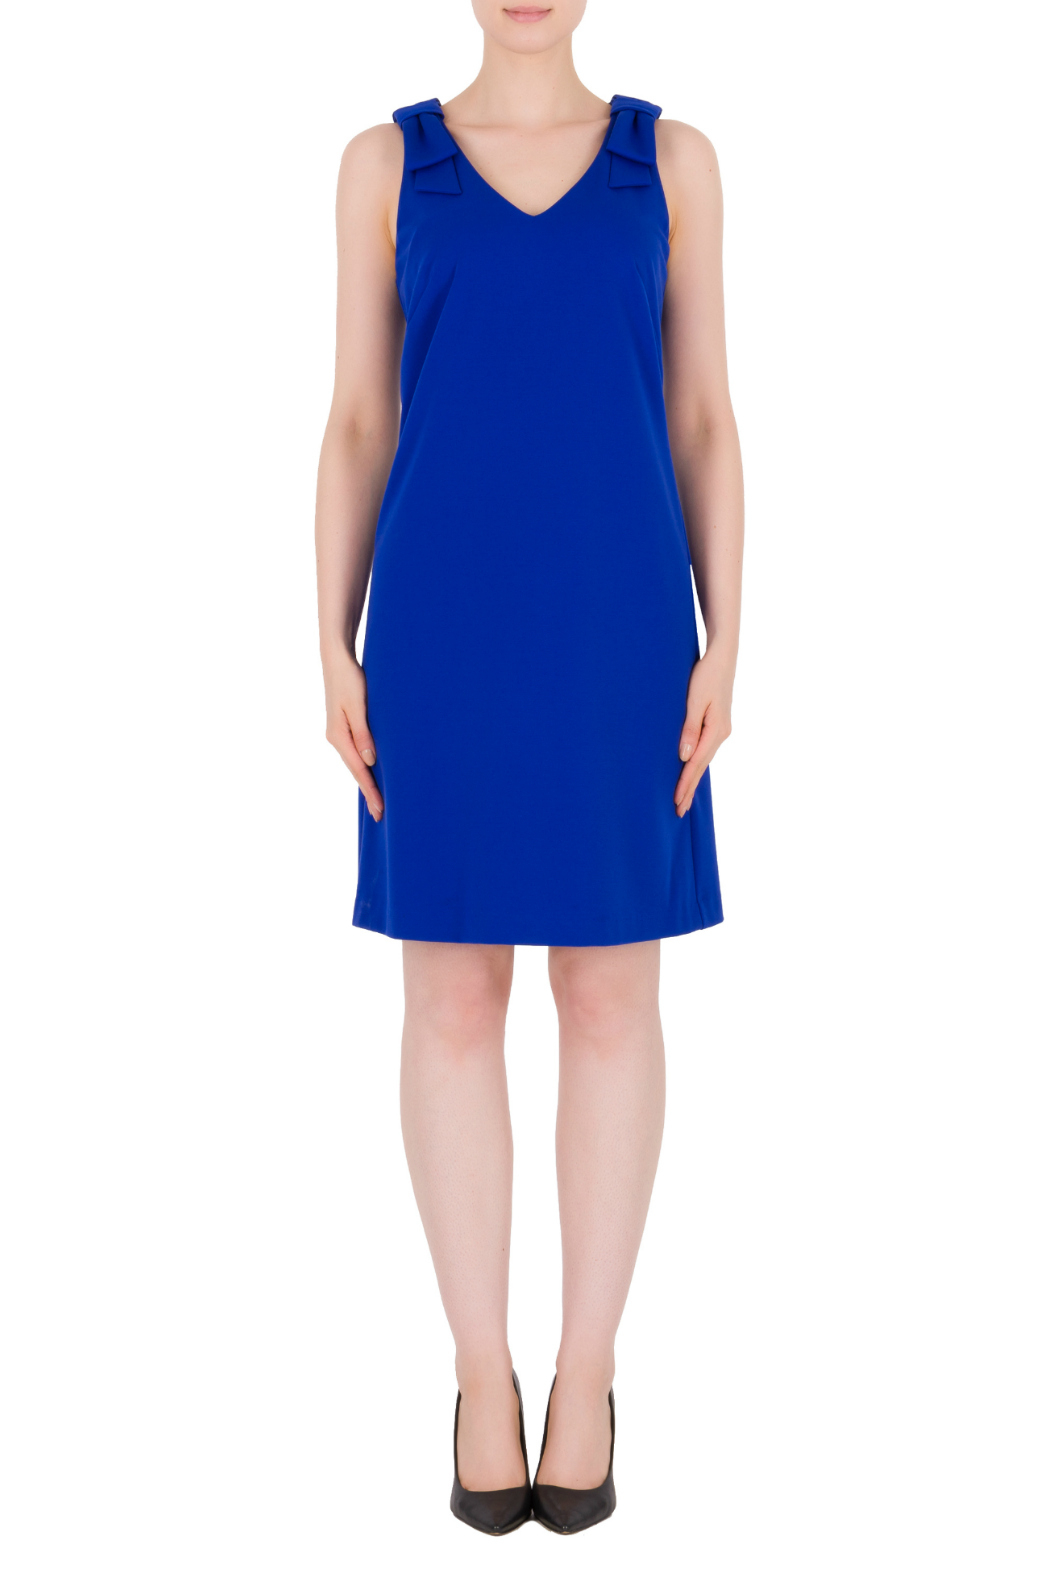 Joseph Ribkoff USA Inc. Bow Detail Straps Dress - Front Cropped Image